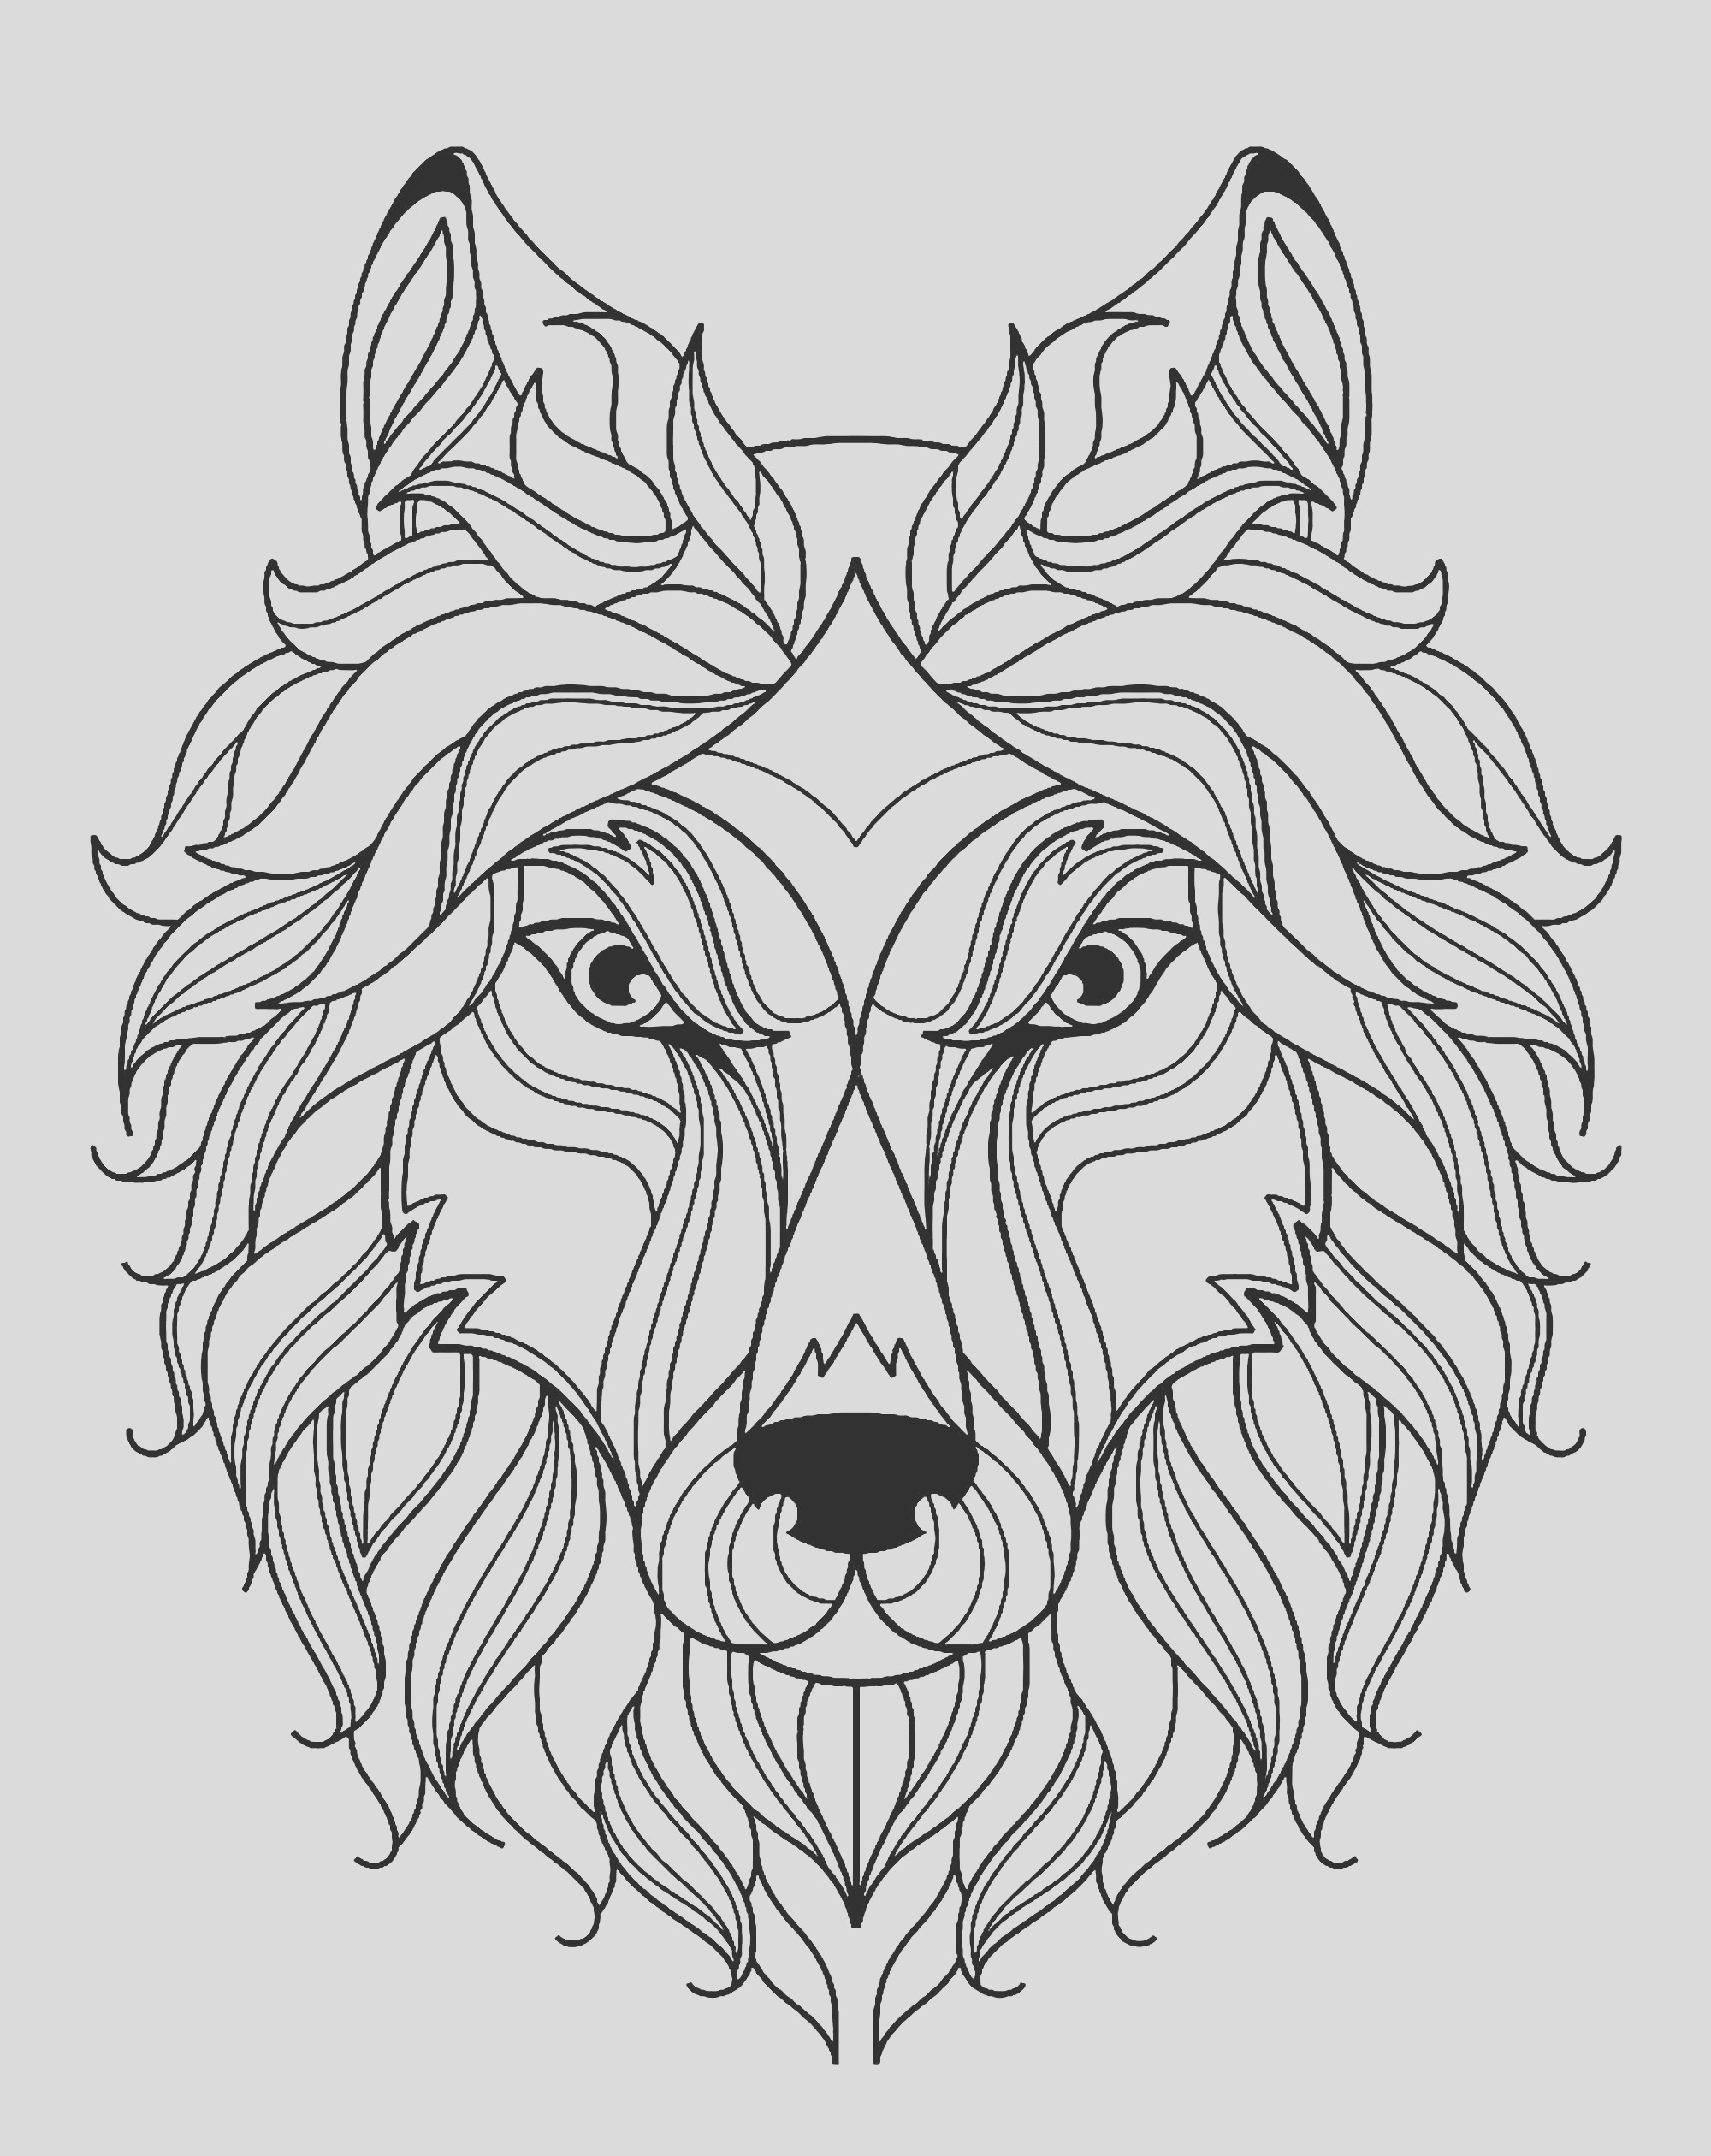 image=wolves coloring big wolf head simple 1